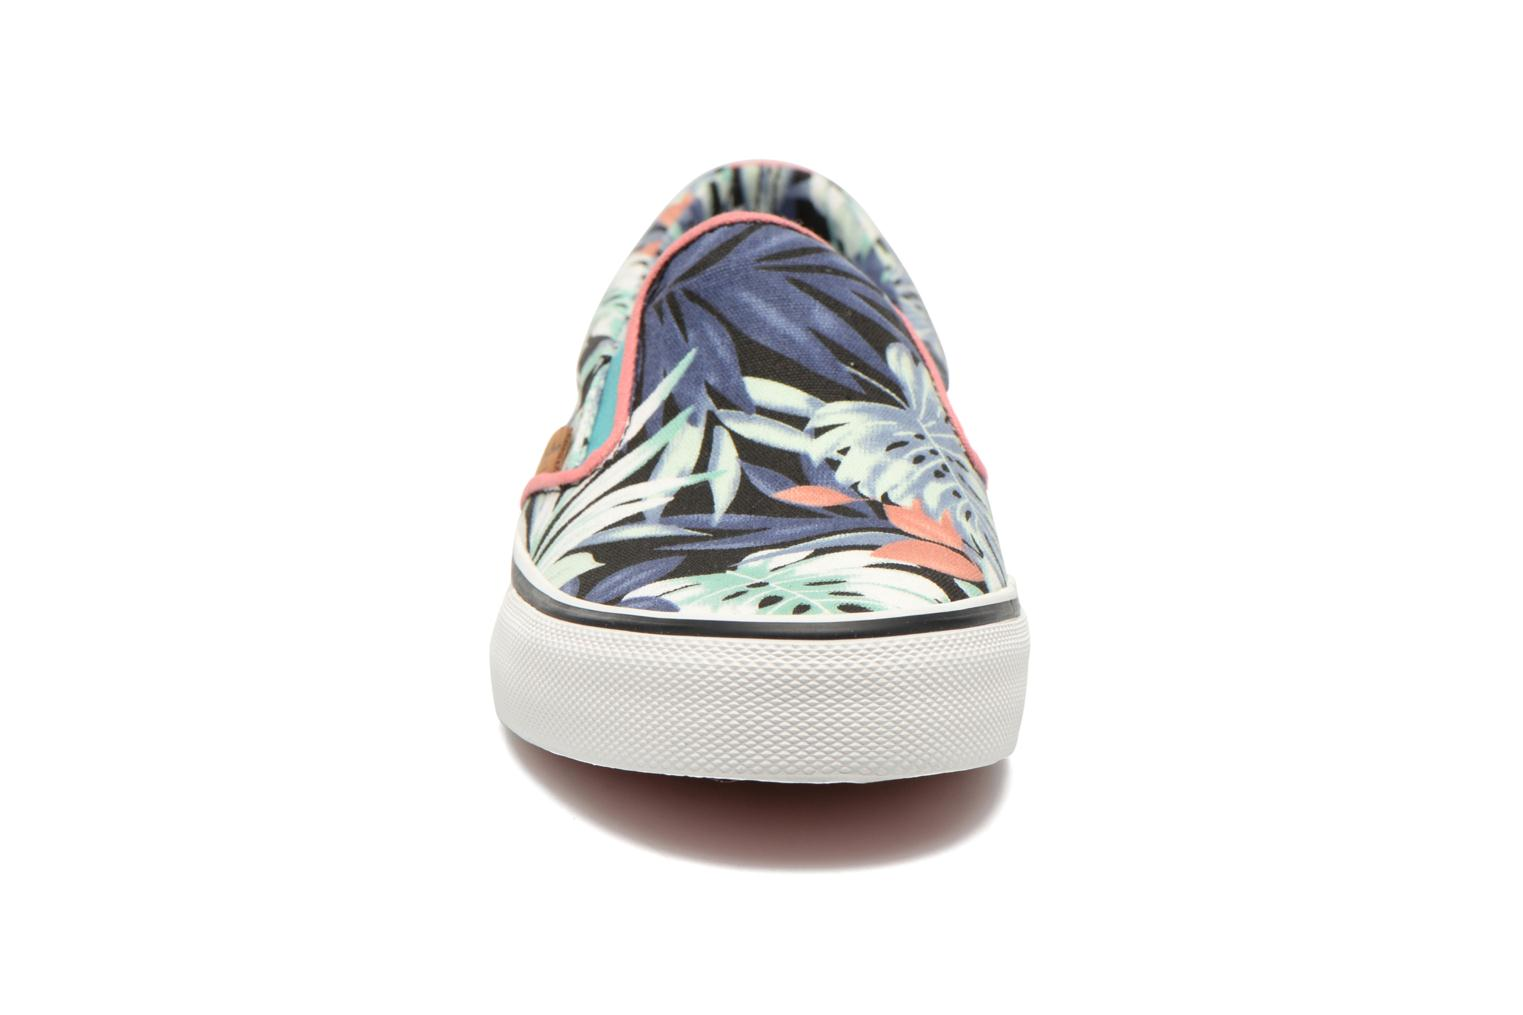 Baskets Pepe jeans Alford Jungle Multicolore vue portées chaussures